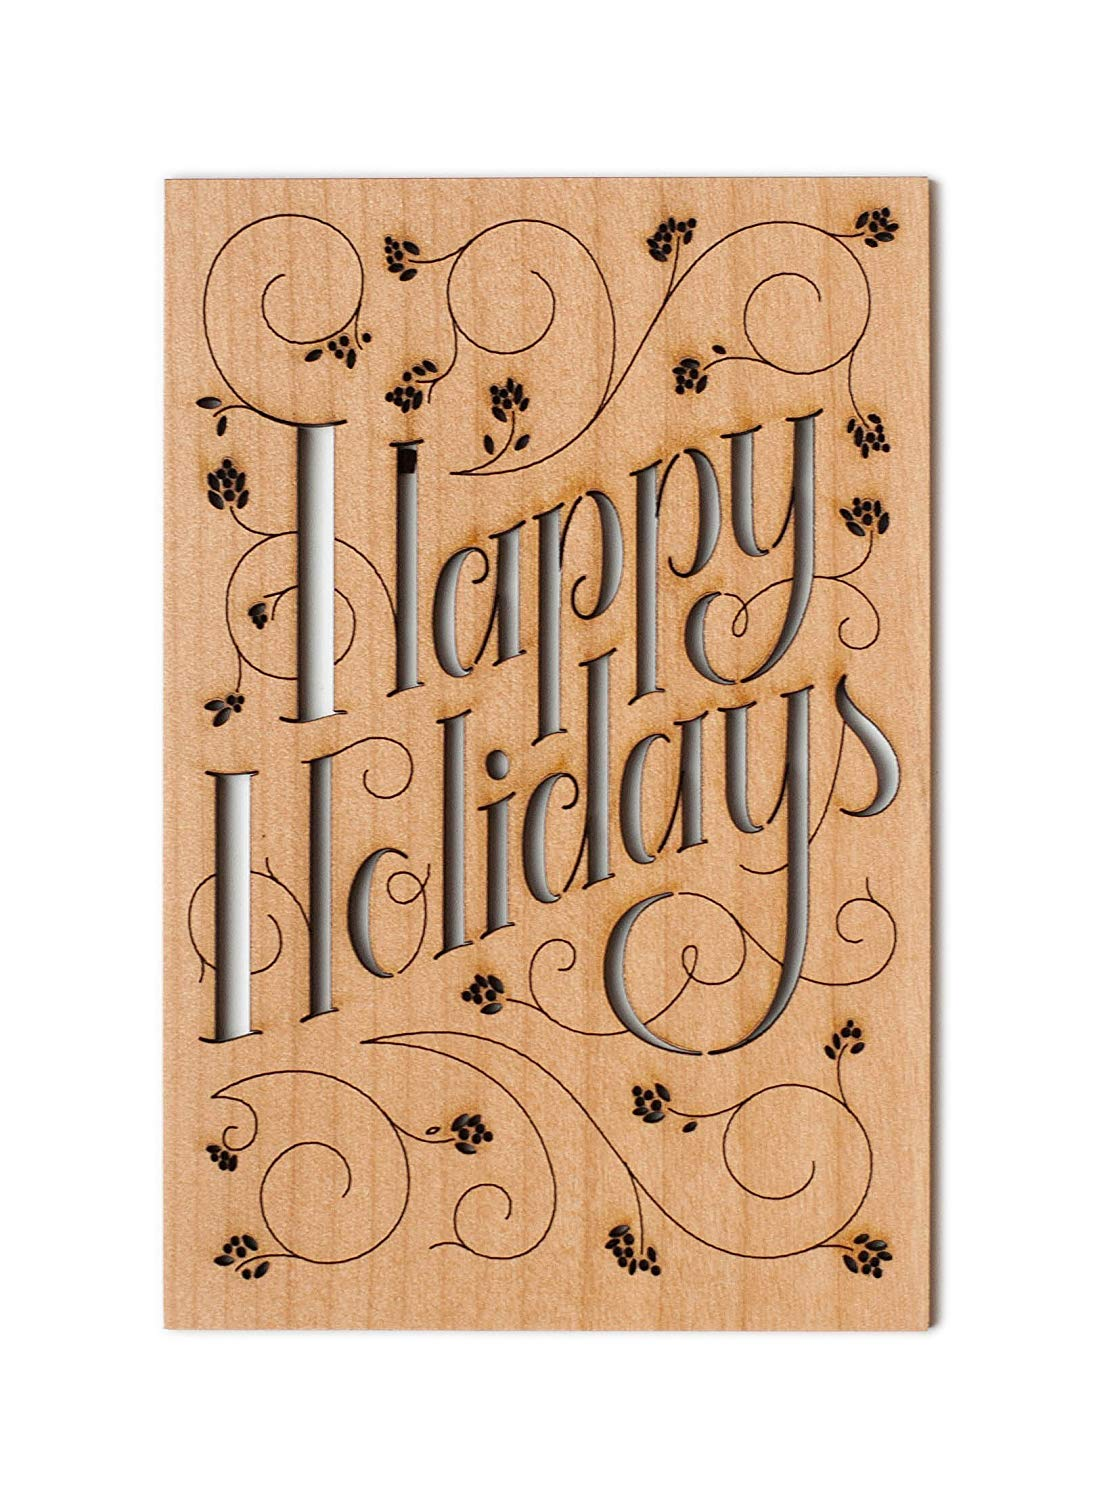 Happy Holidays Vines Laser Cut Wood Christmas Card (Greeting Card / Unique Gift / Happy Holidays / Personalized Available)